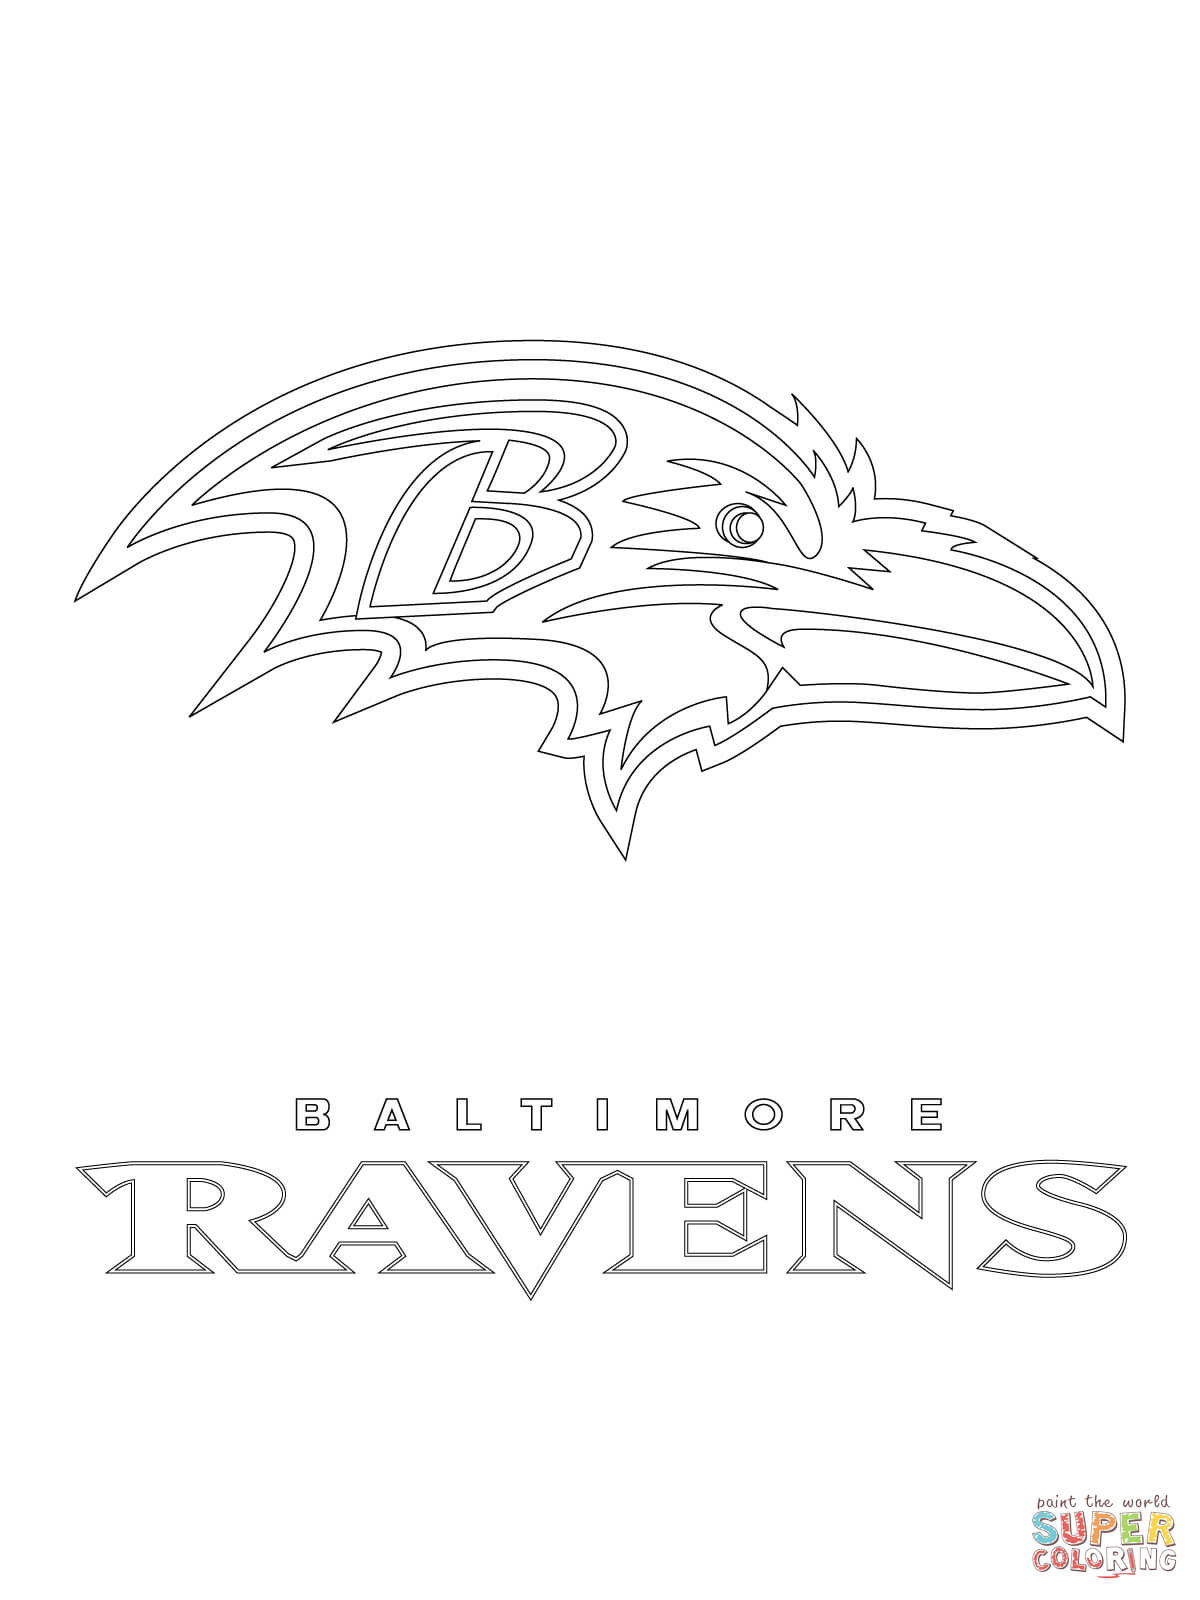 Seahawks Coloring Pages Printable Striking Seattle Logo   Fiscalreform - Free Printable Seahawks Coloring Pages